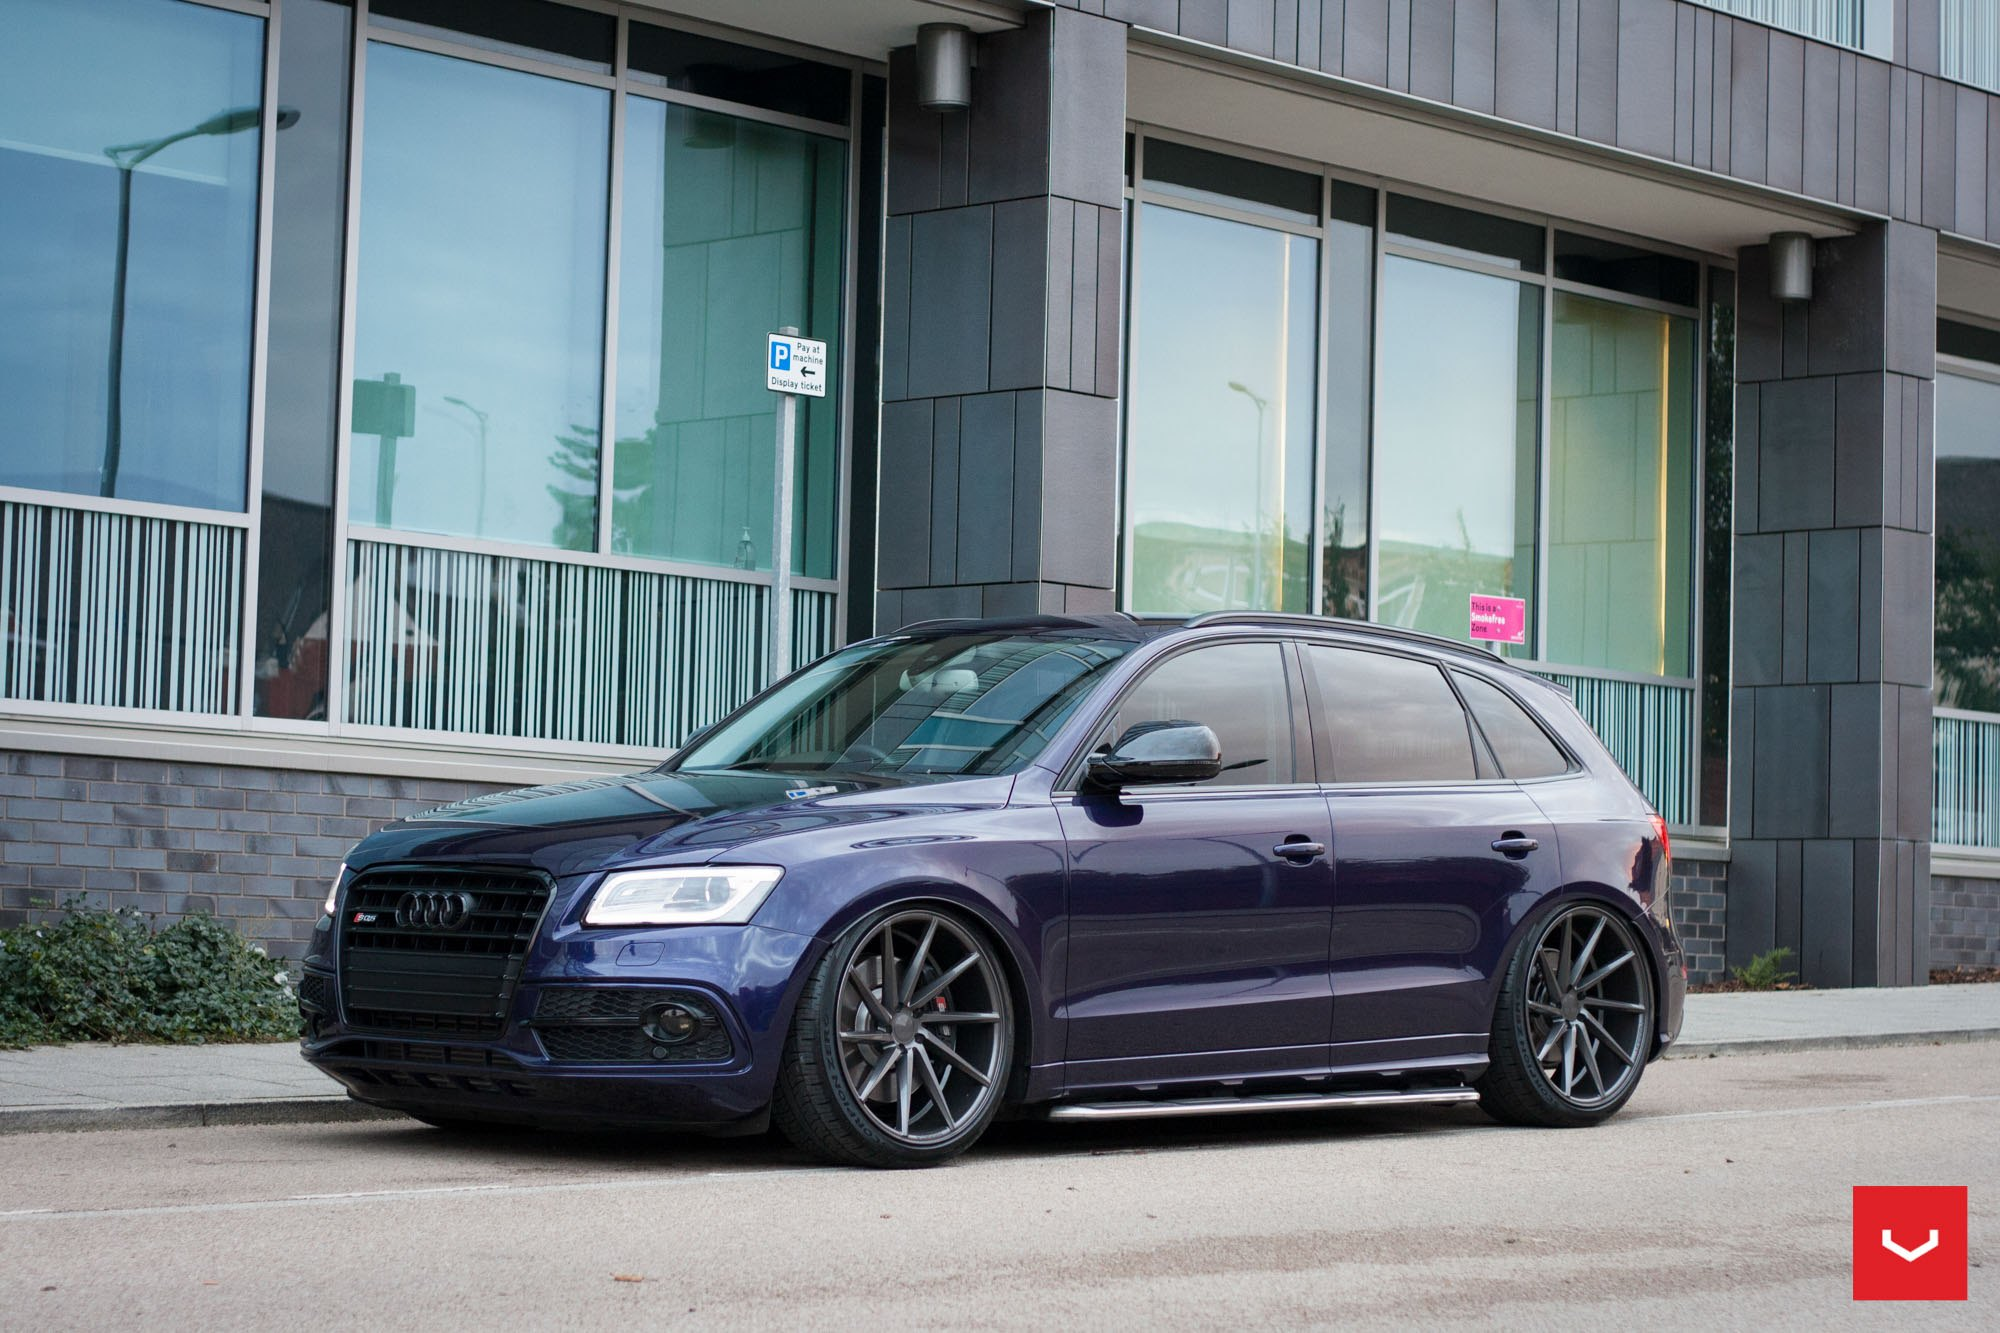 Purple Audi Q5 With Custom Blacked Out Grille Photo By Vossen